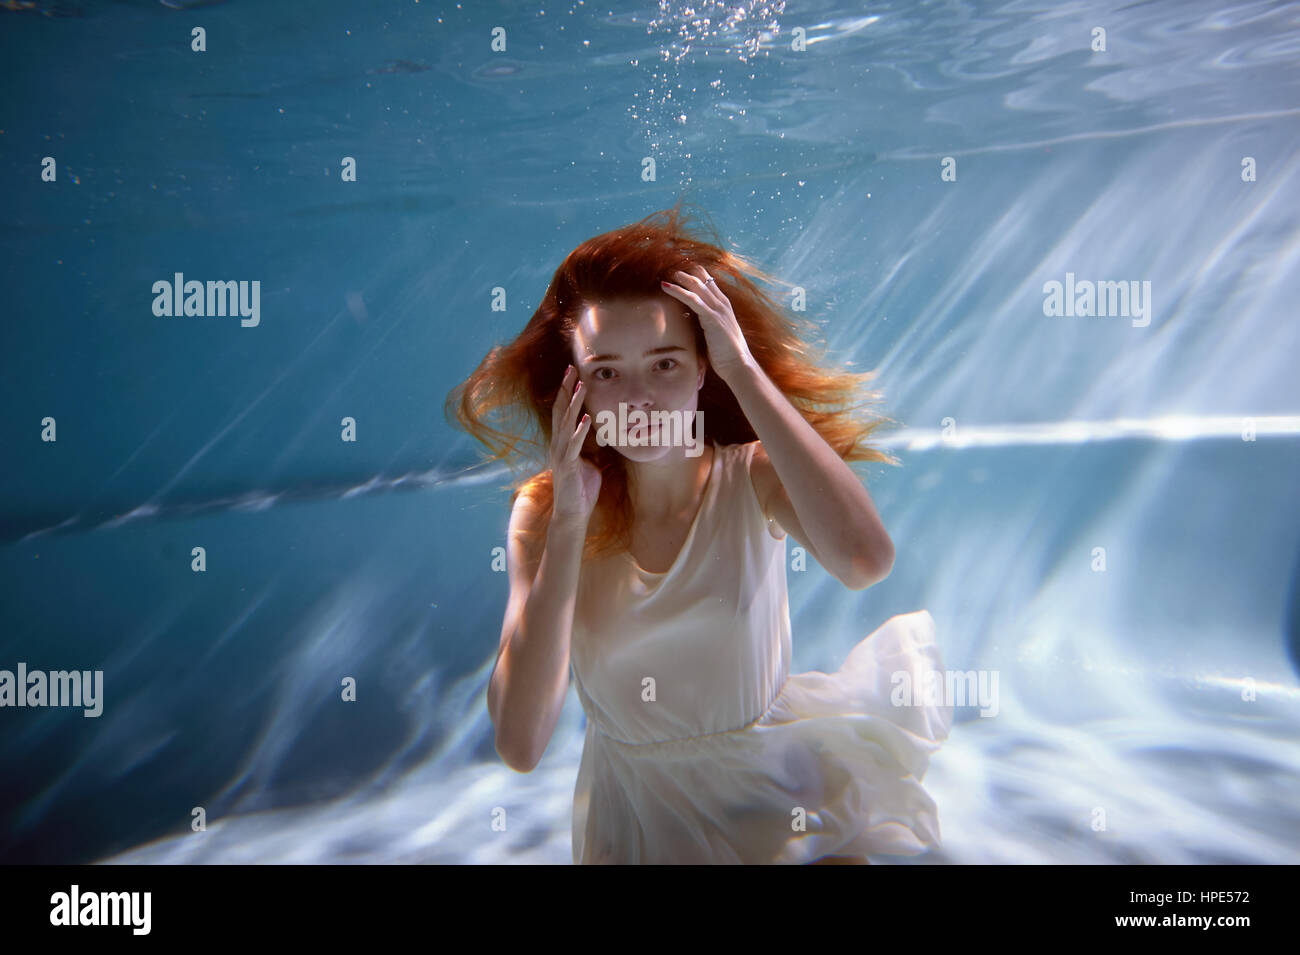 Underwater in the pool with the purest water. Beautiful girl in a scarlet dress and flowing hair. Stock Photo